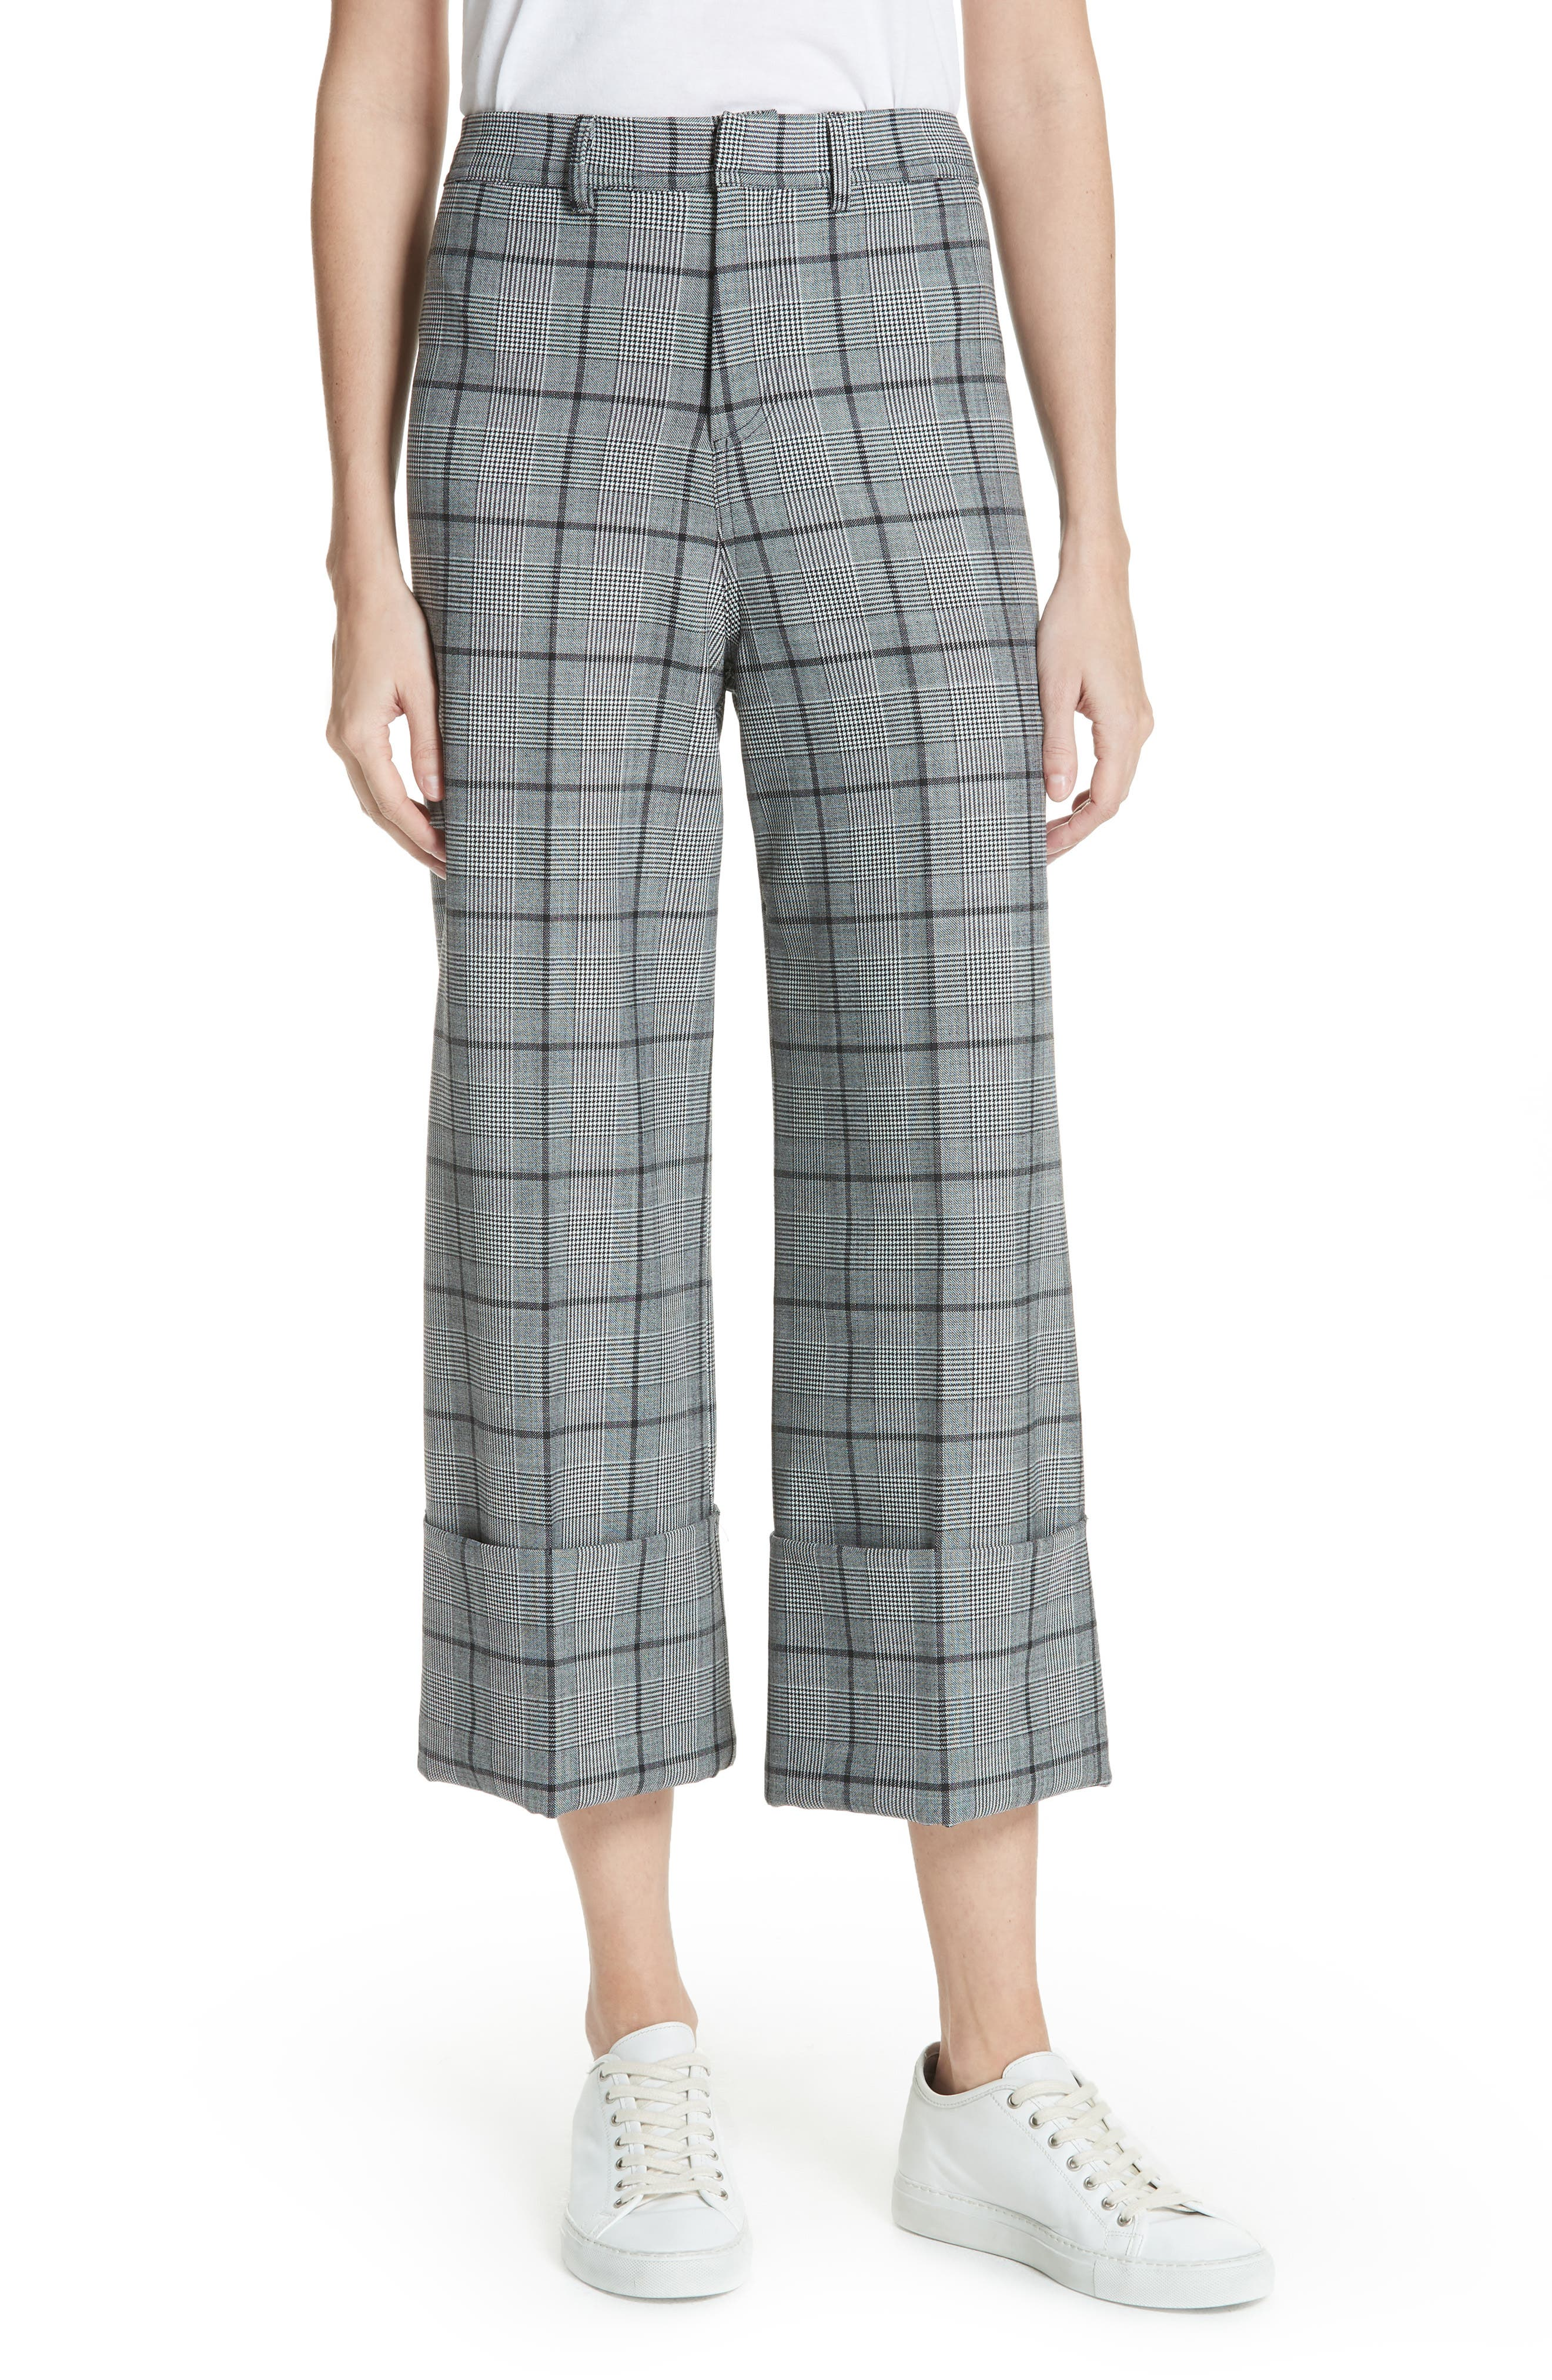 Bacall Cuff Crop Wide Leg Pants,                         Main,                         color, 028